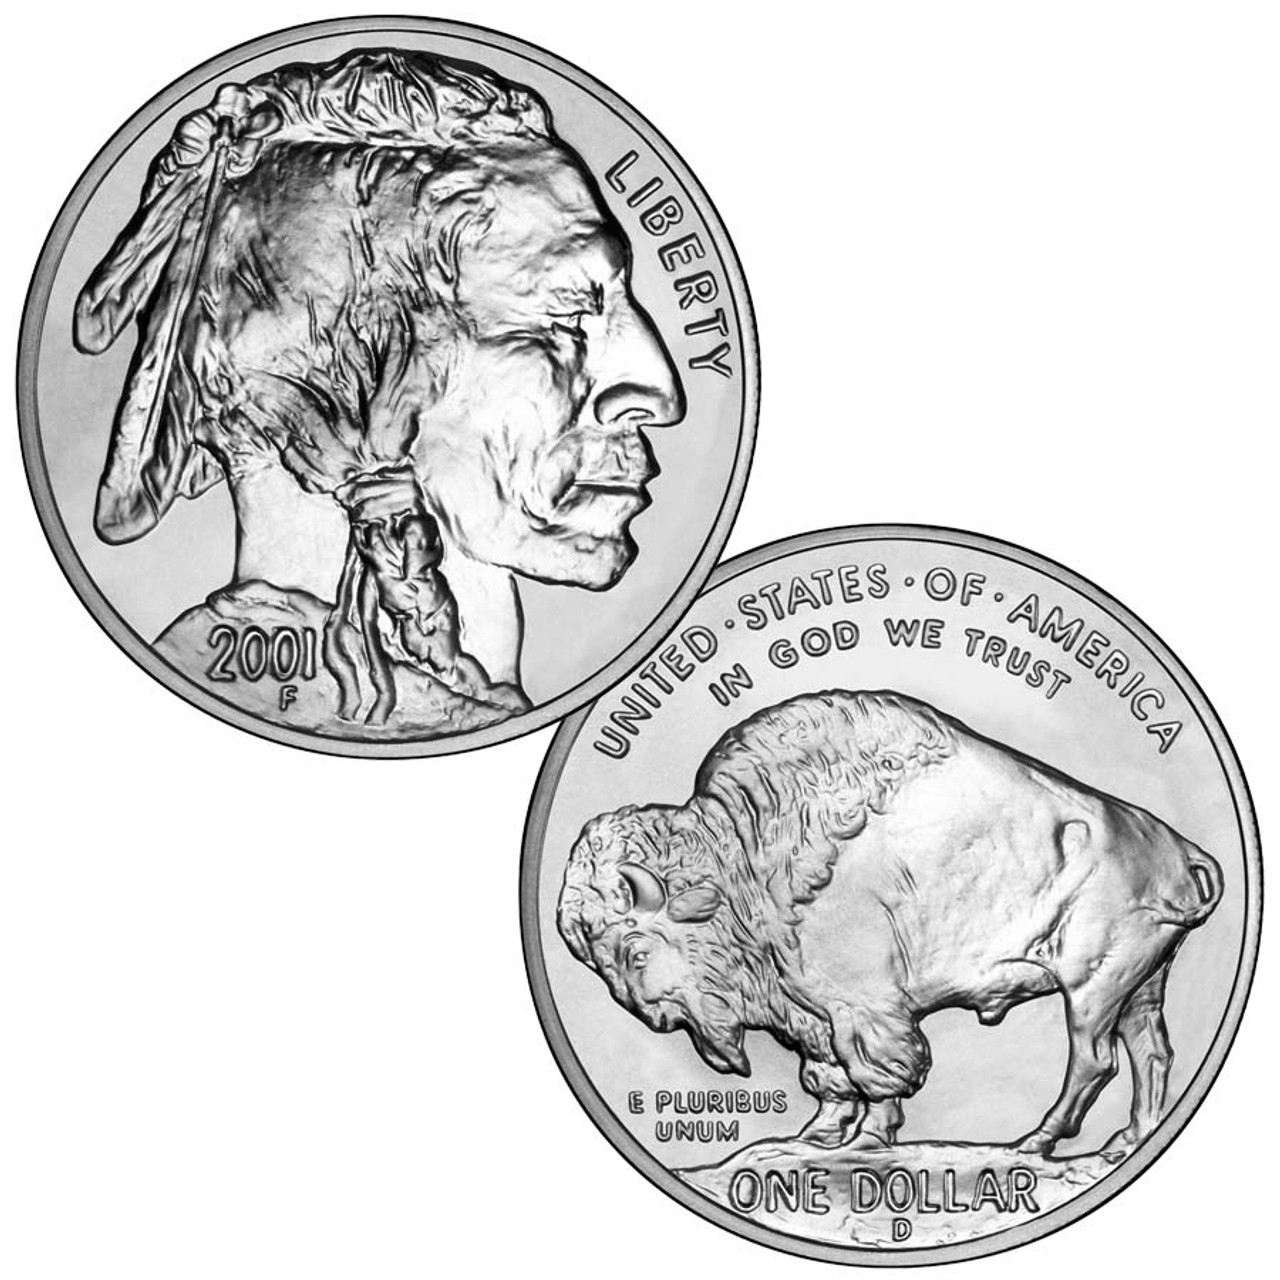 2001-D Buffalo Silver Dollar Brilliant Uncirculated Image 1